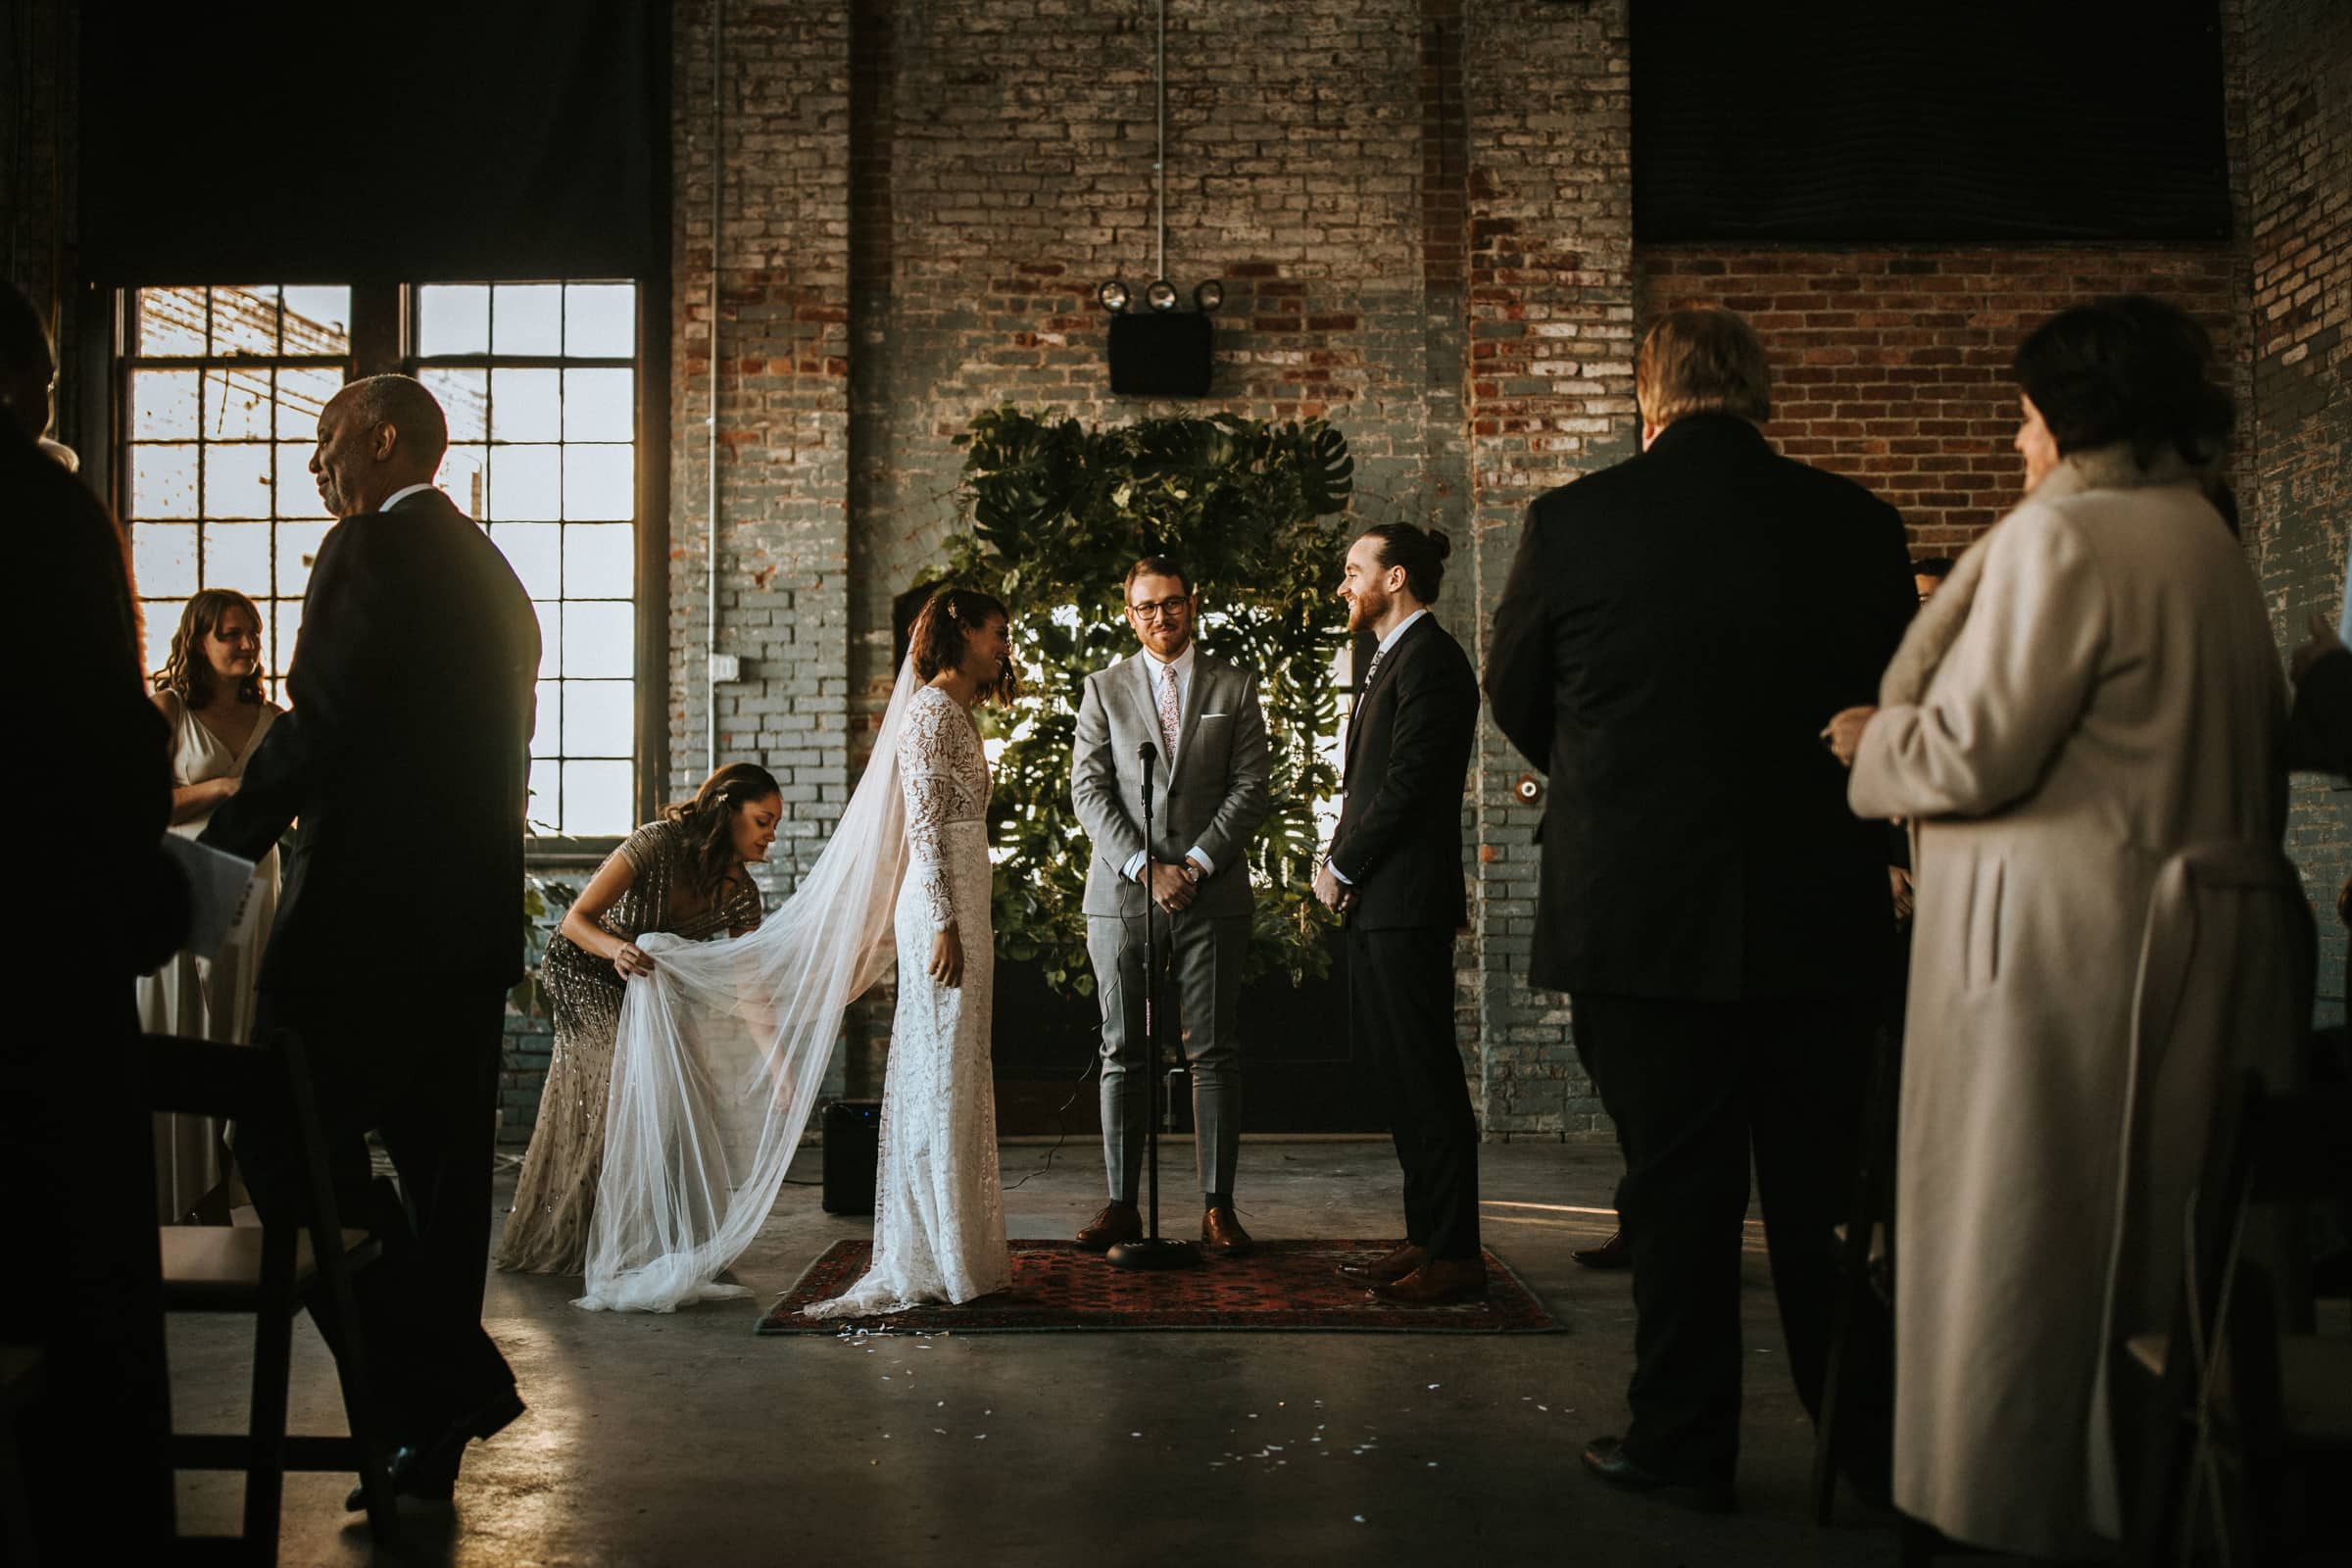 The wedding couple is standing in front of their wedding guests and is about to get married.